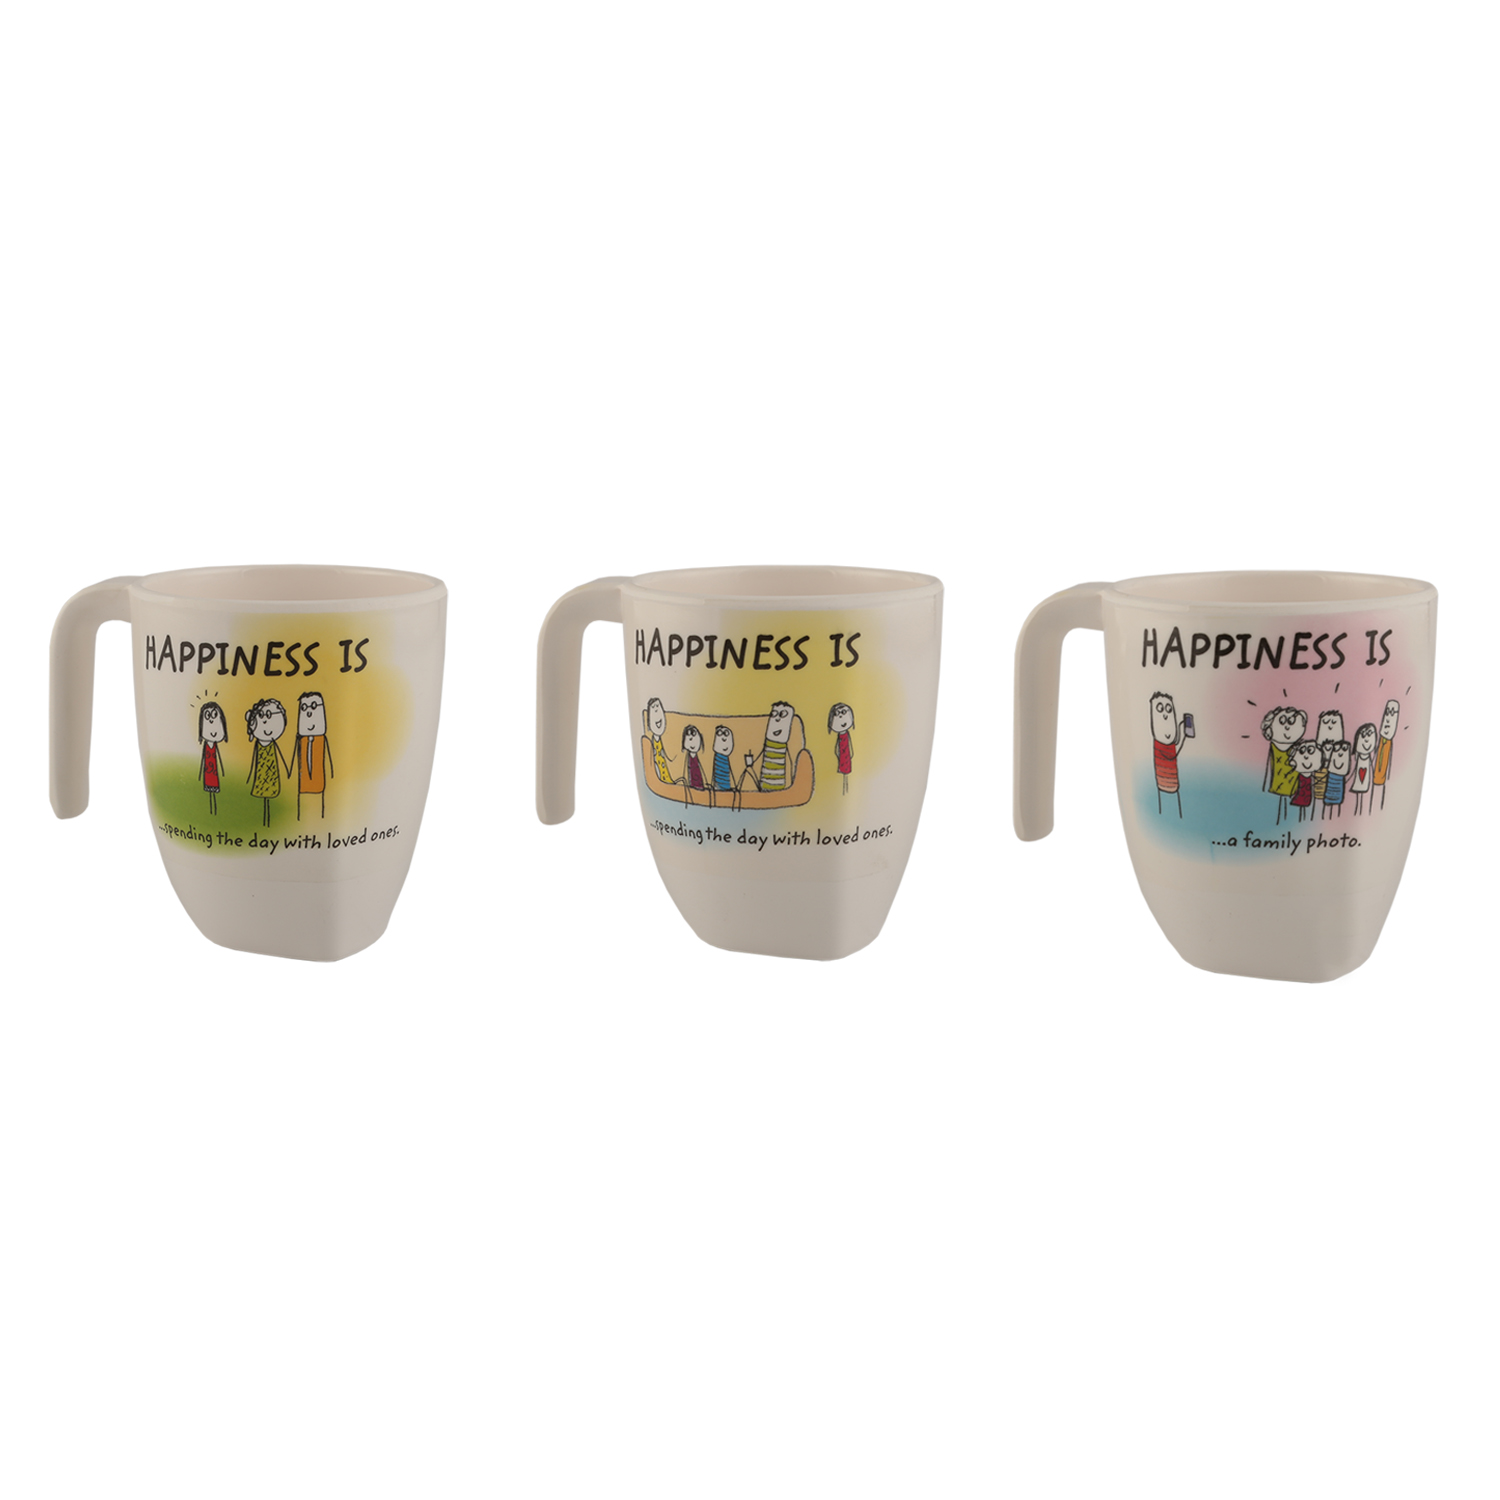 HAPPINESS SYMPHONY MUG L - Rad Assrt Food Grade Melamine Glasses & Tumblers in Multicolor Colour by Servewell